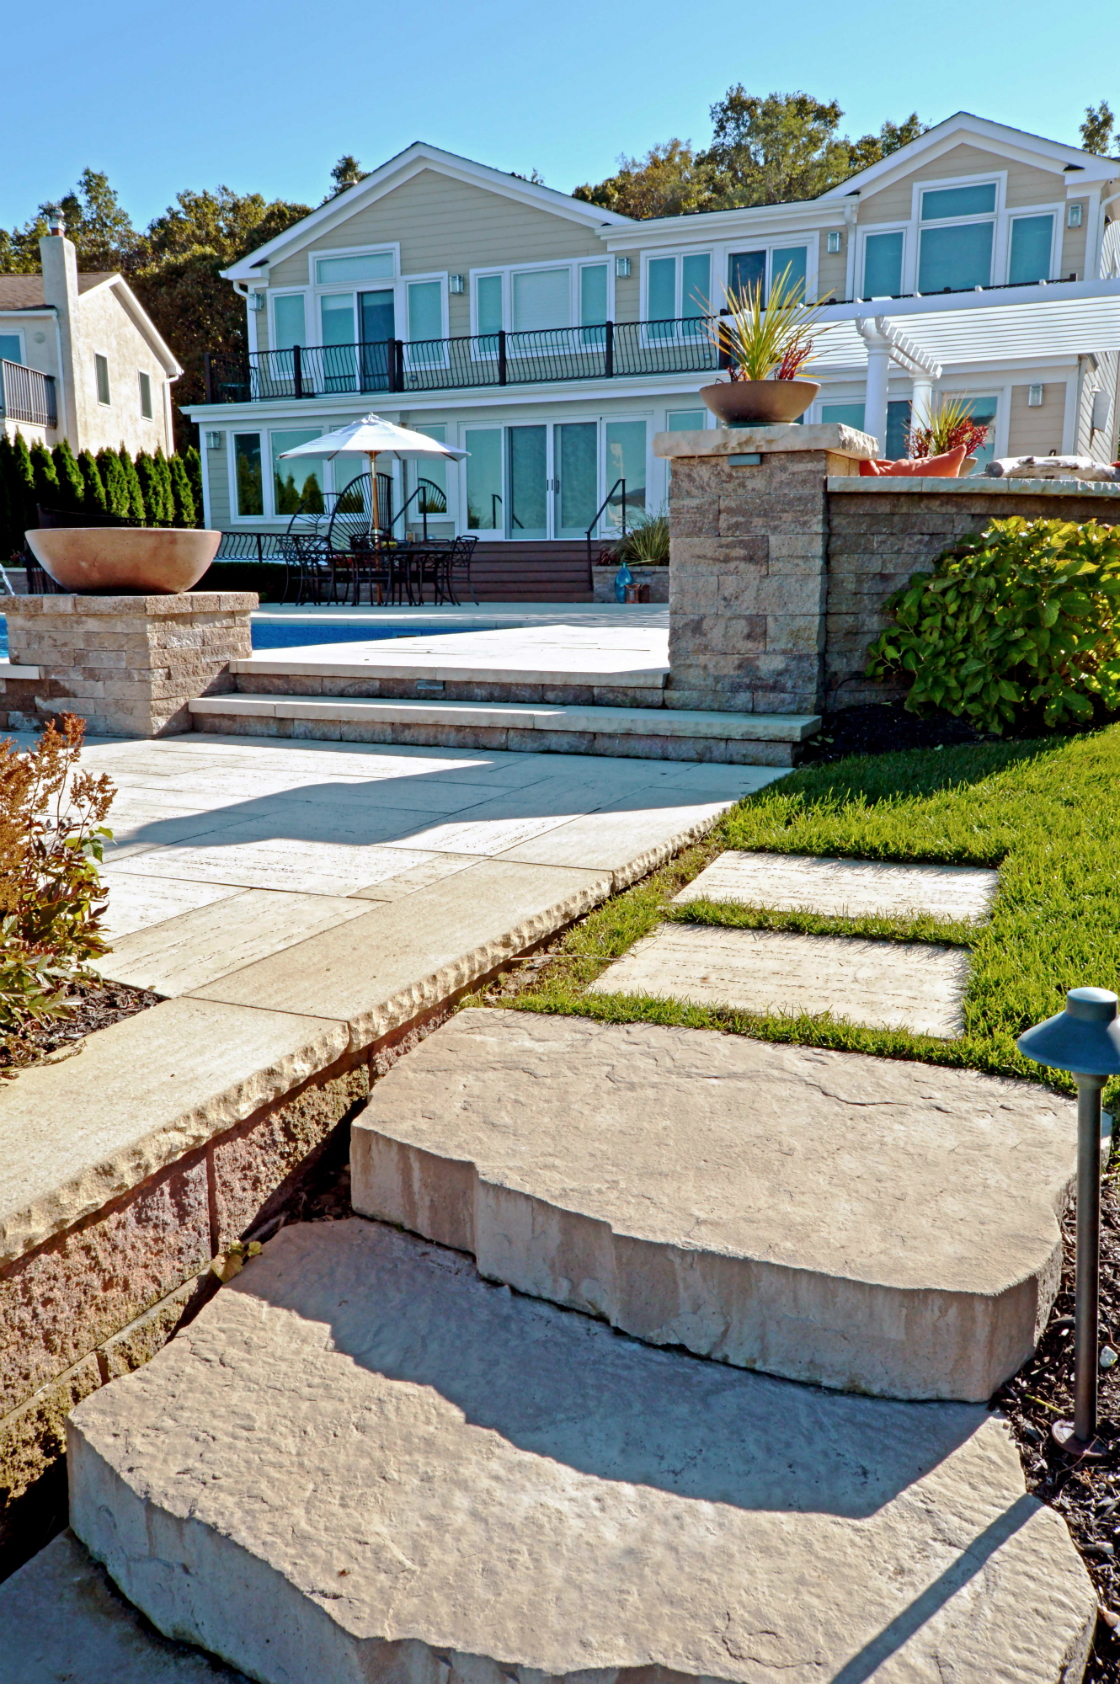 Landscape Remodeling Ideas for 2018 in Oyster Bay Cove, NY